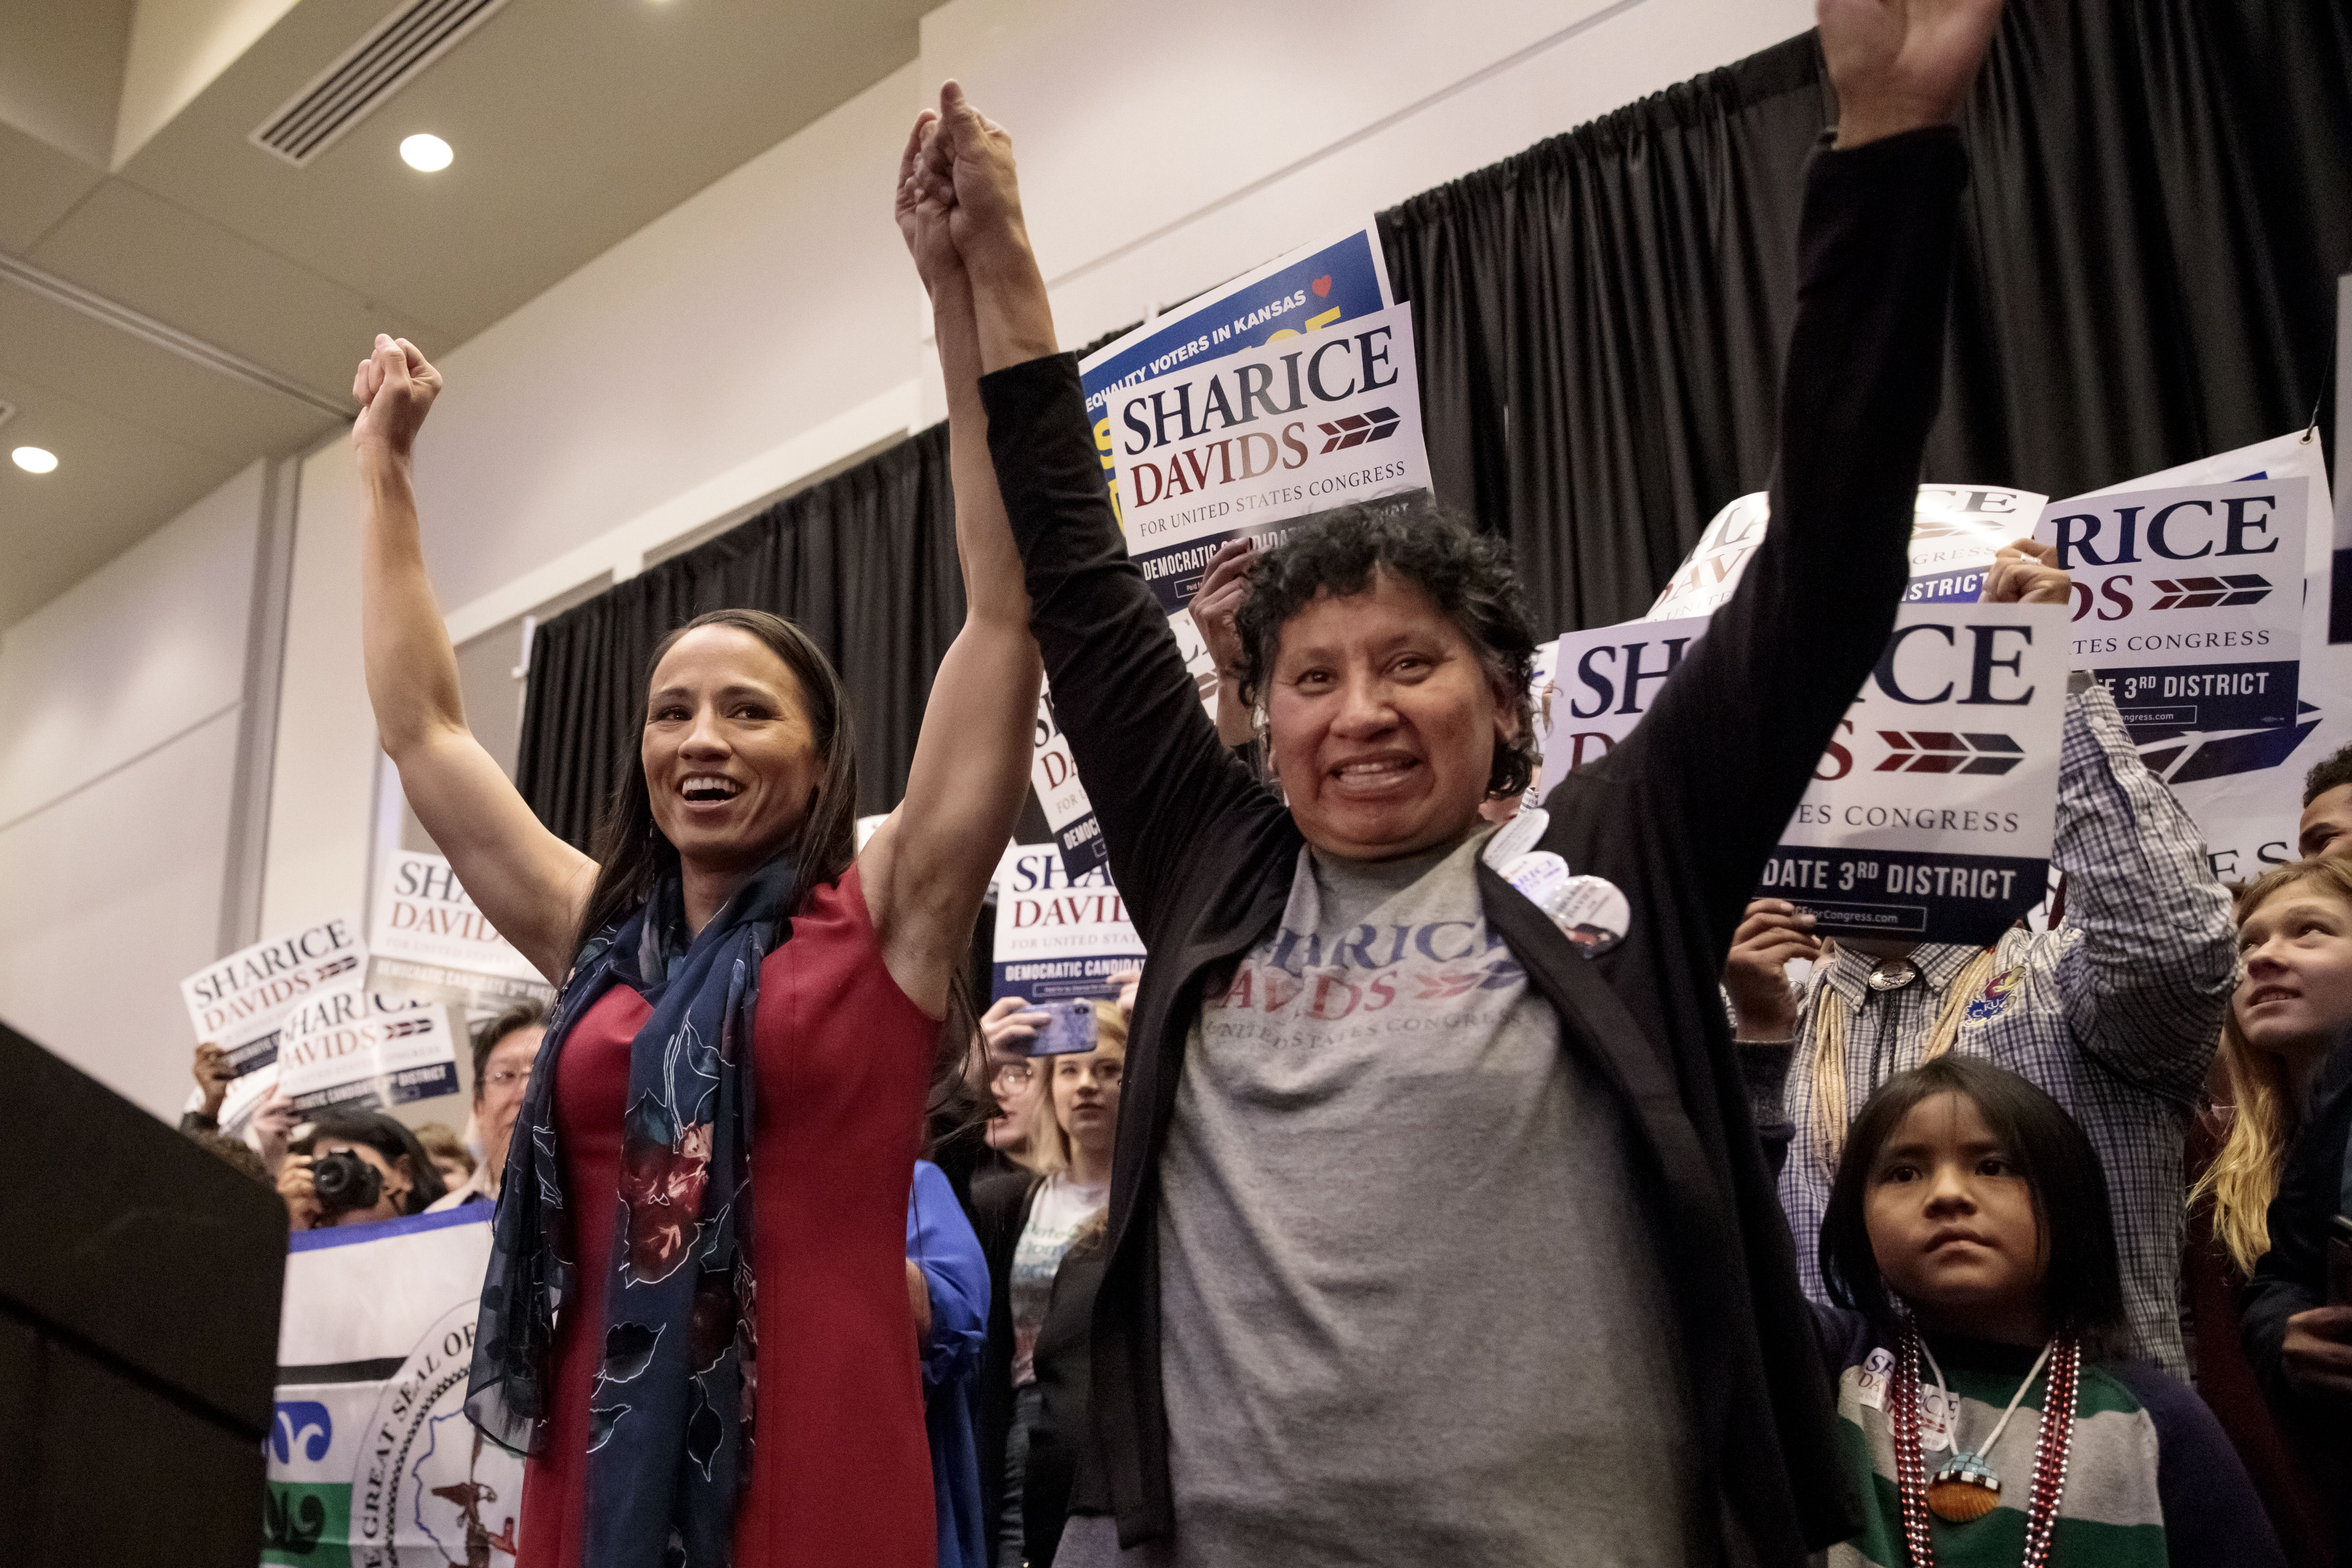 OLATHE, KS - NOVEMBER 06: Democratic candidate for Kansas' 3rd Congressional District Sharice Davids (L) and her mother, Crystal Herriage, celebrate with supporters during an election night party on November 6, 2018 in Olathe, Kansas. Davids defeated incumbent Republican Kevin Yoder. (Photo by Whitney Curtis/Getty Images)